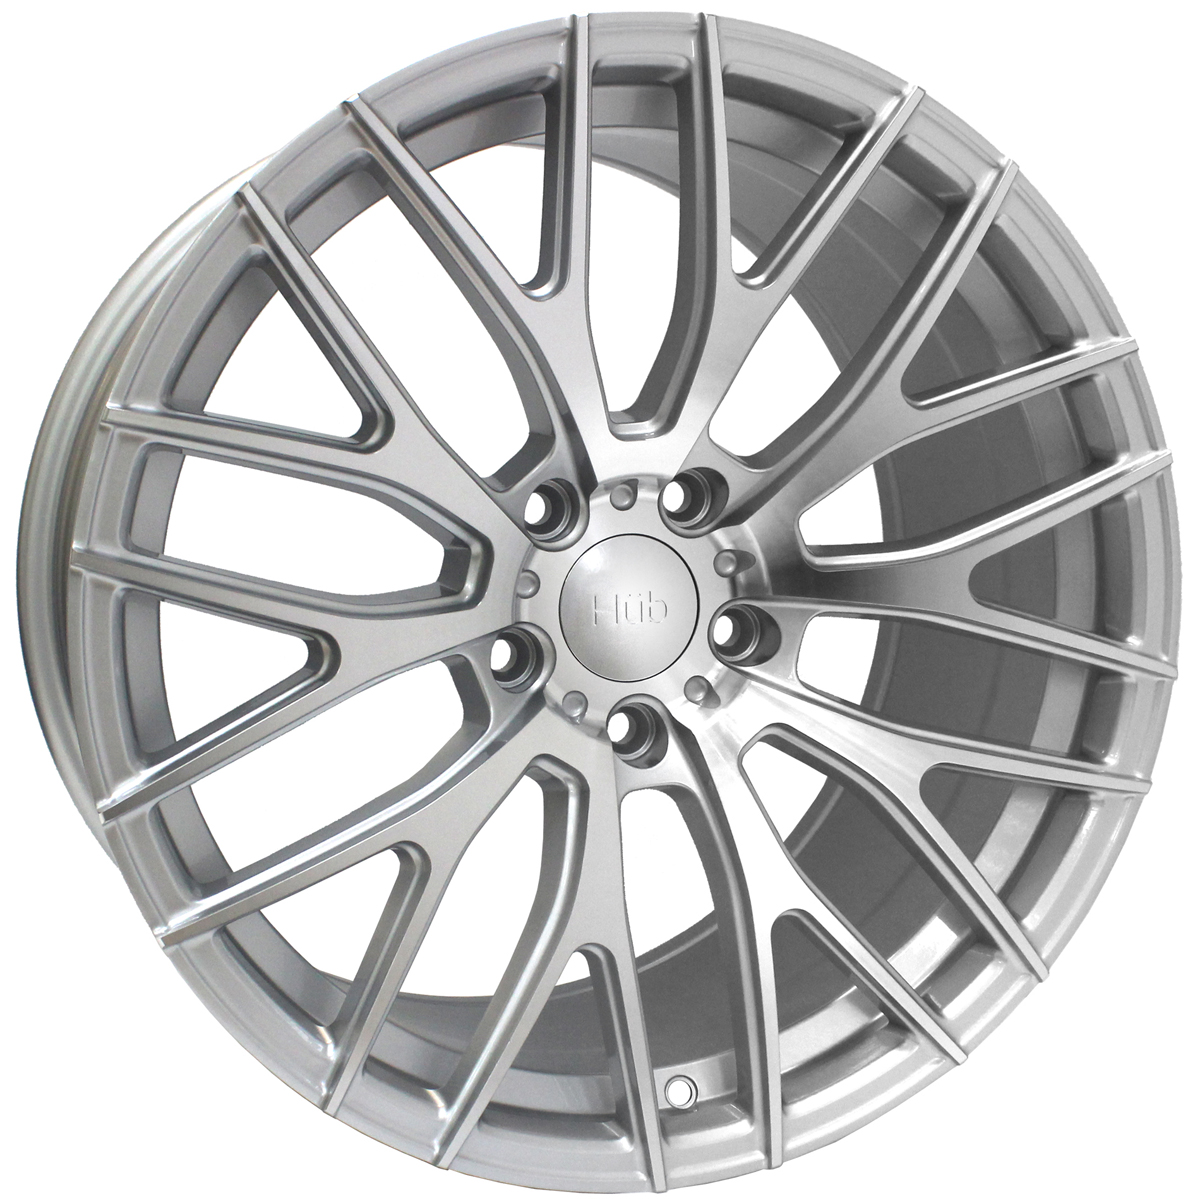 "NEW 19"" HUB V20 ALLOY WHEELS IN SILVER POL WITH WIDER 9.5"" REARS"